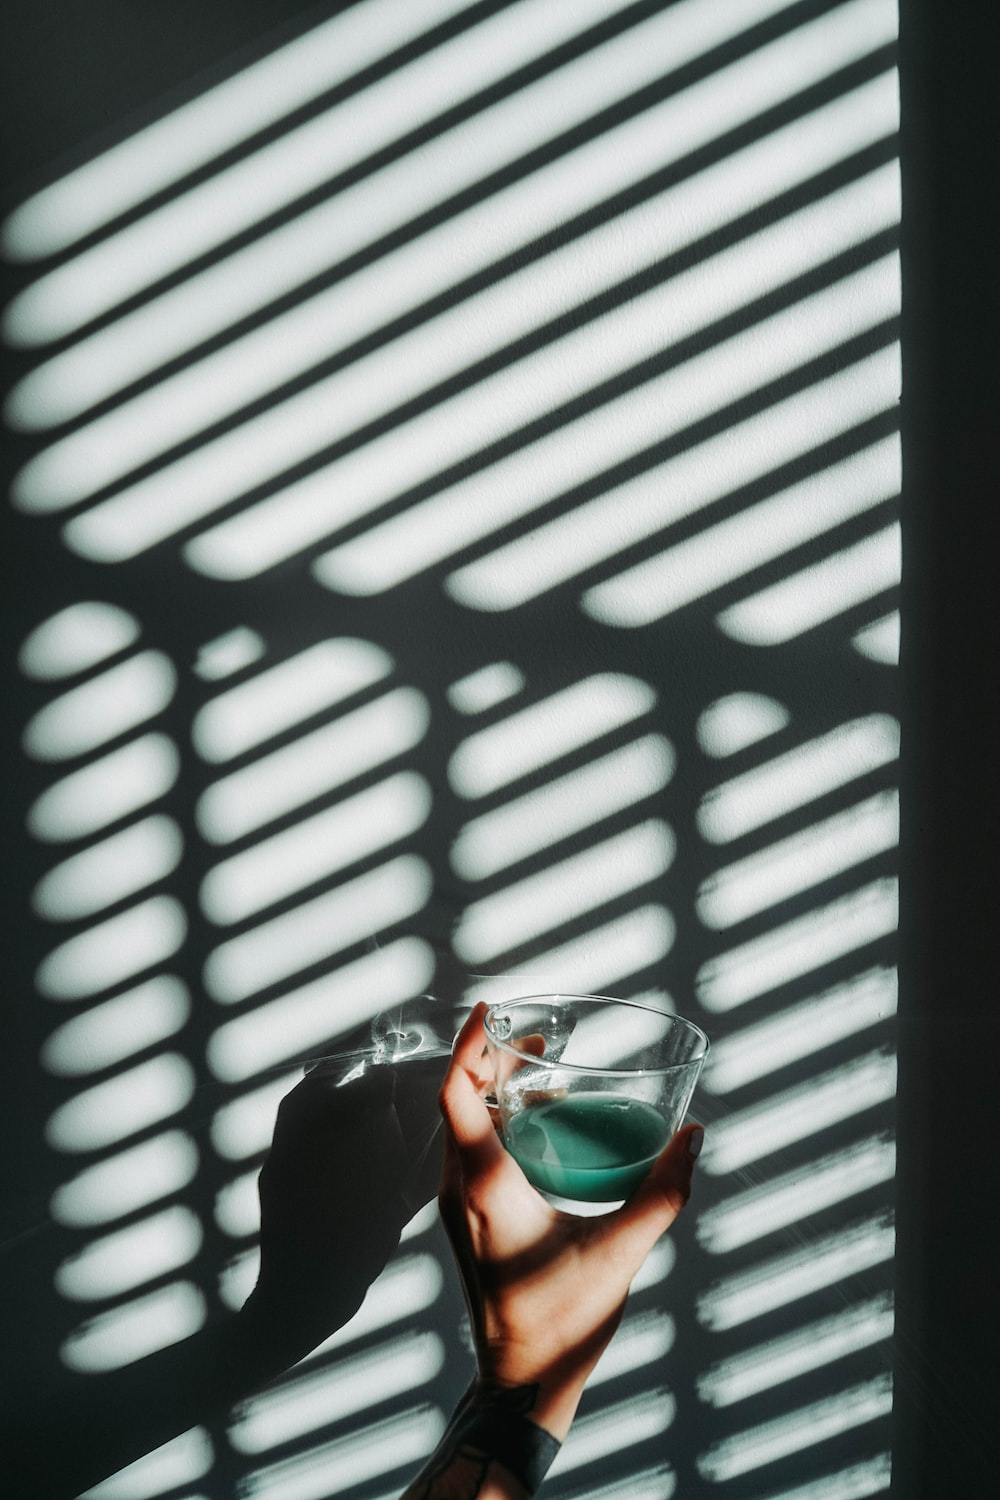 person holding drinking glass cup with green liquid